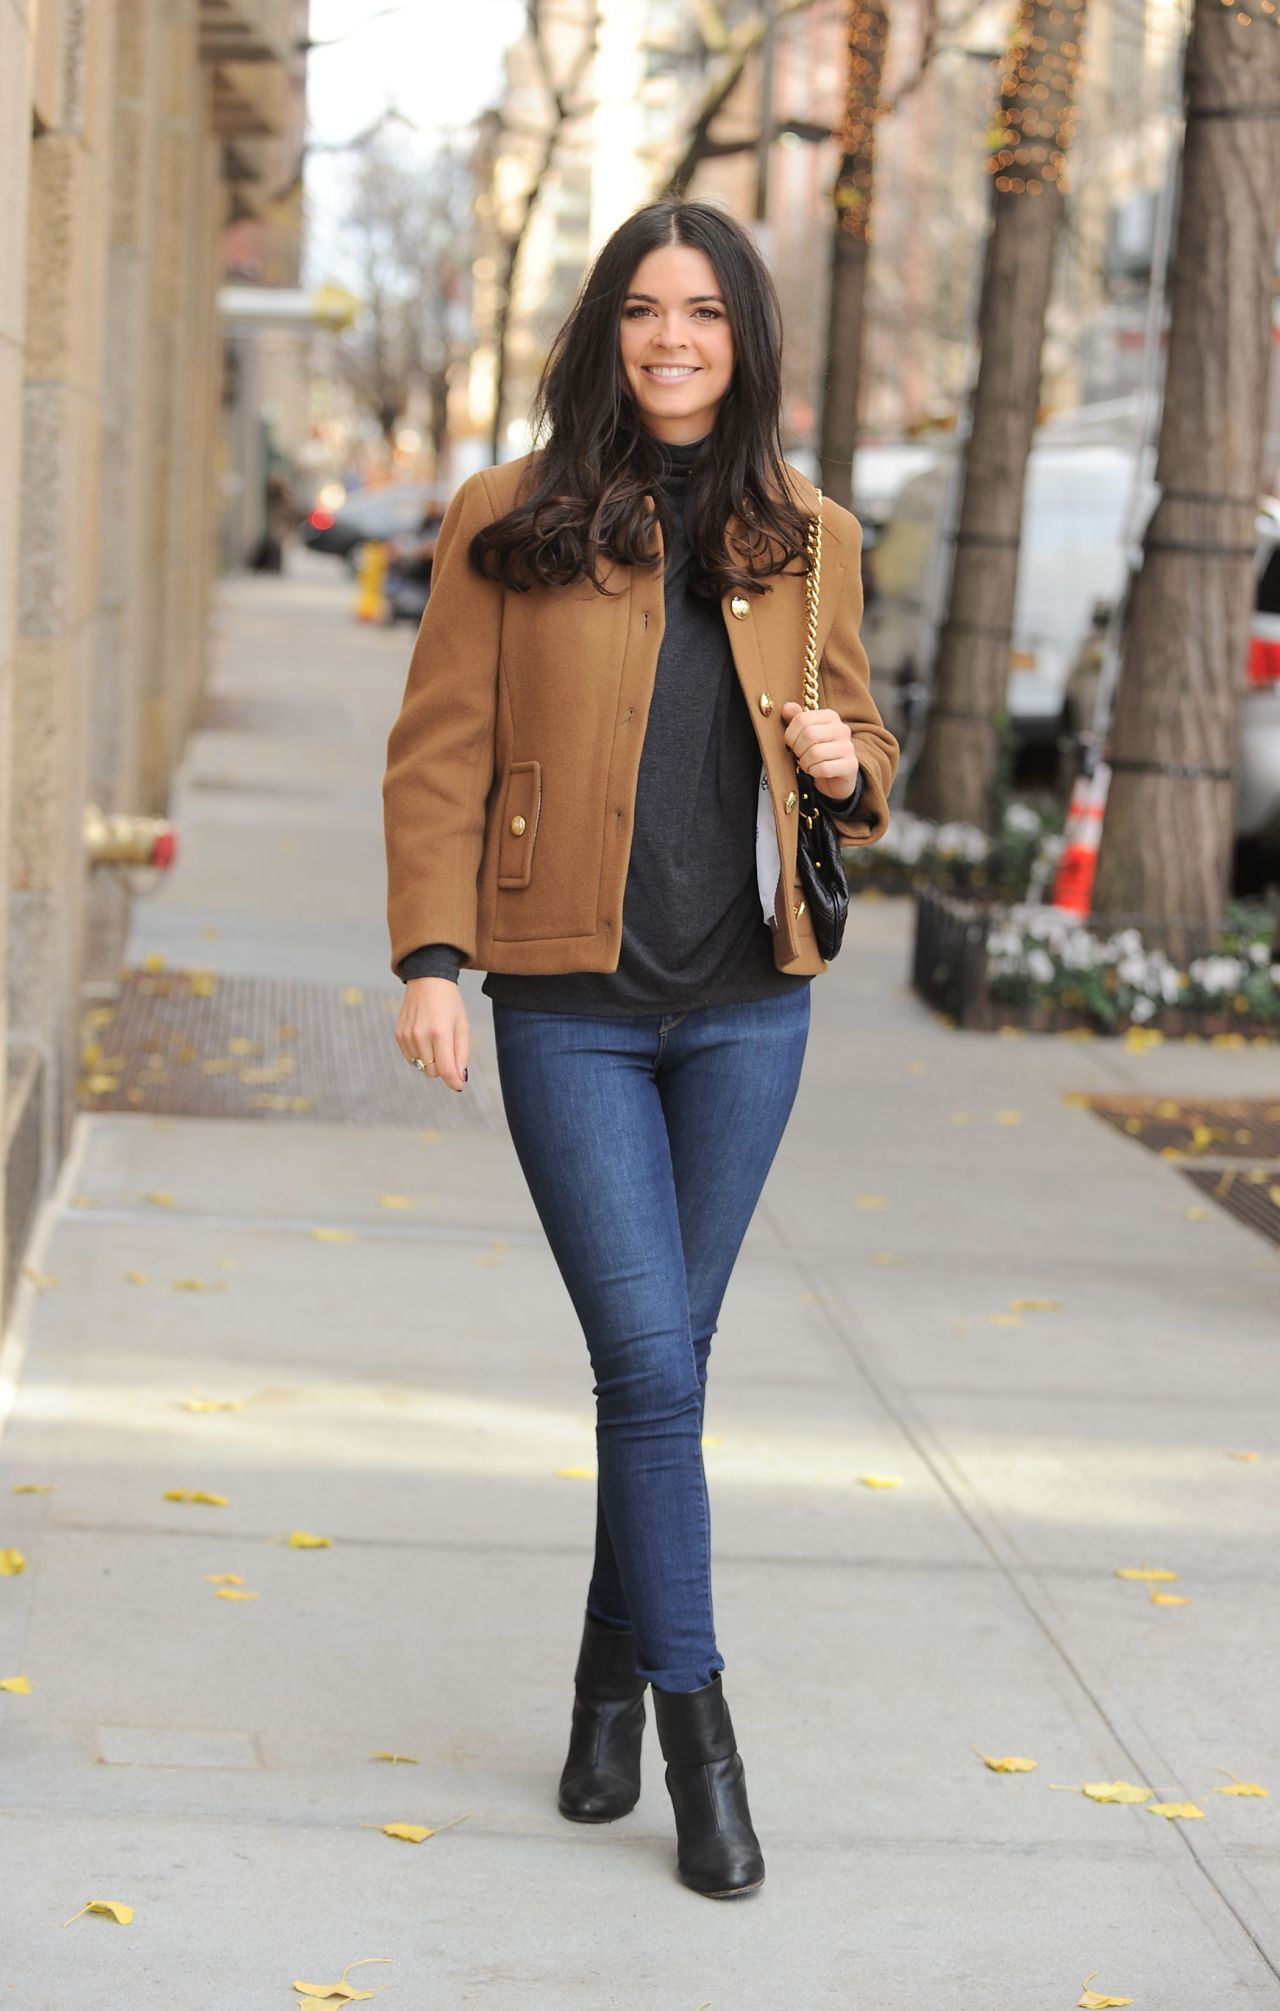 Katie Lee Casual Style Leaving Nbc Studios In New York